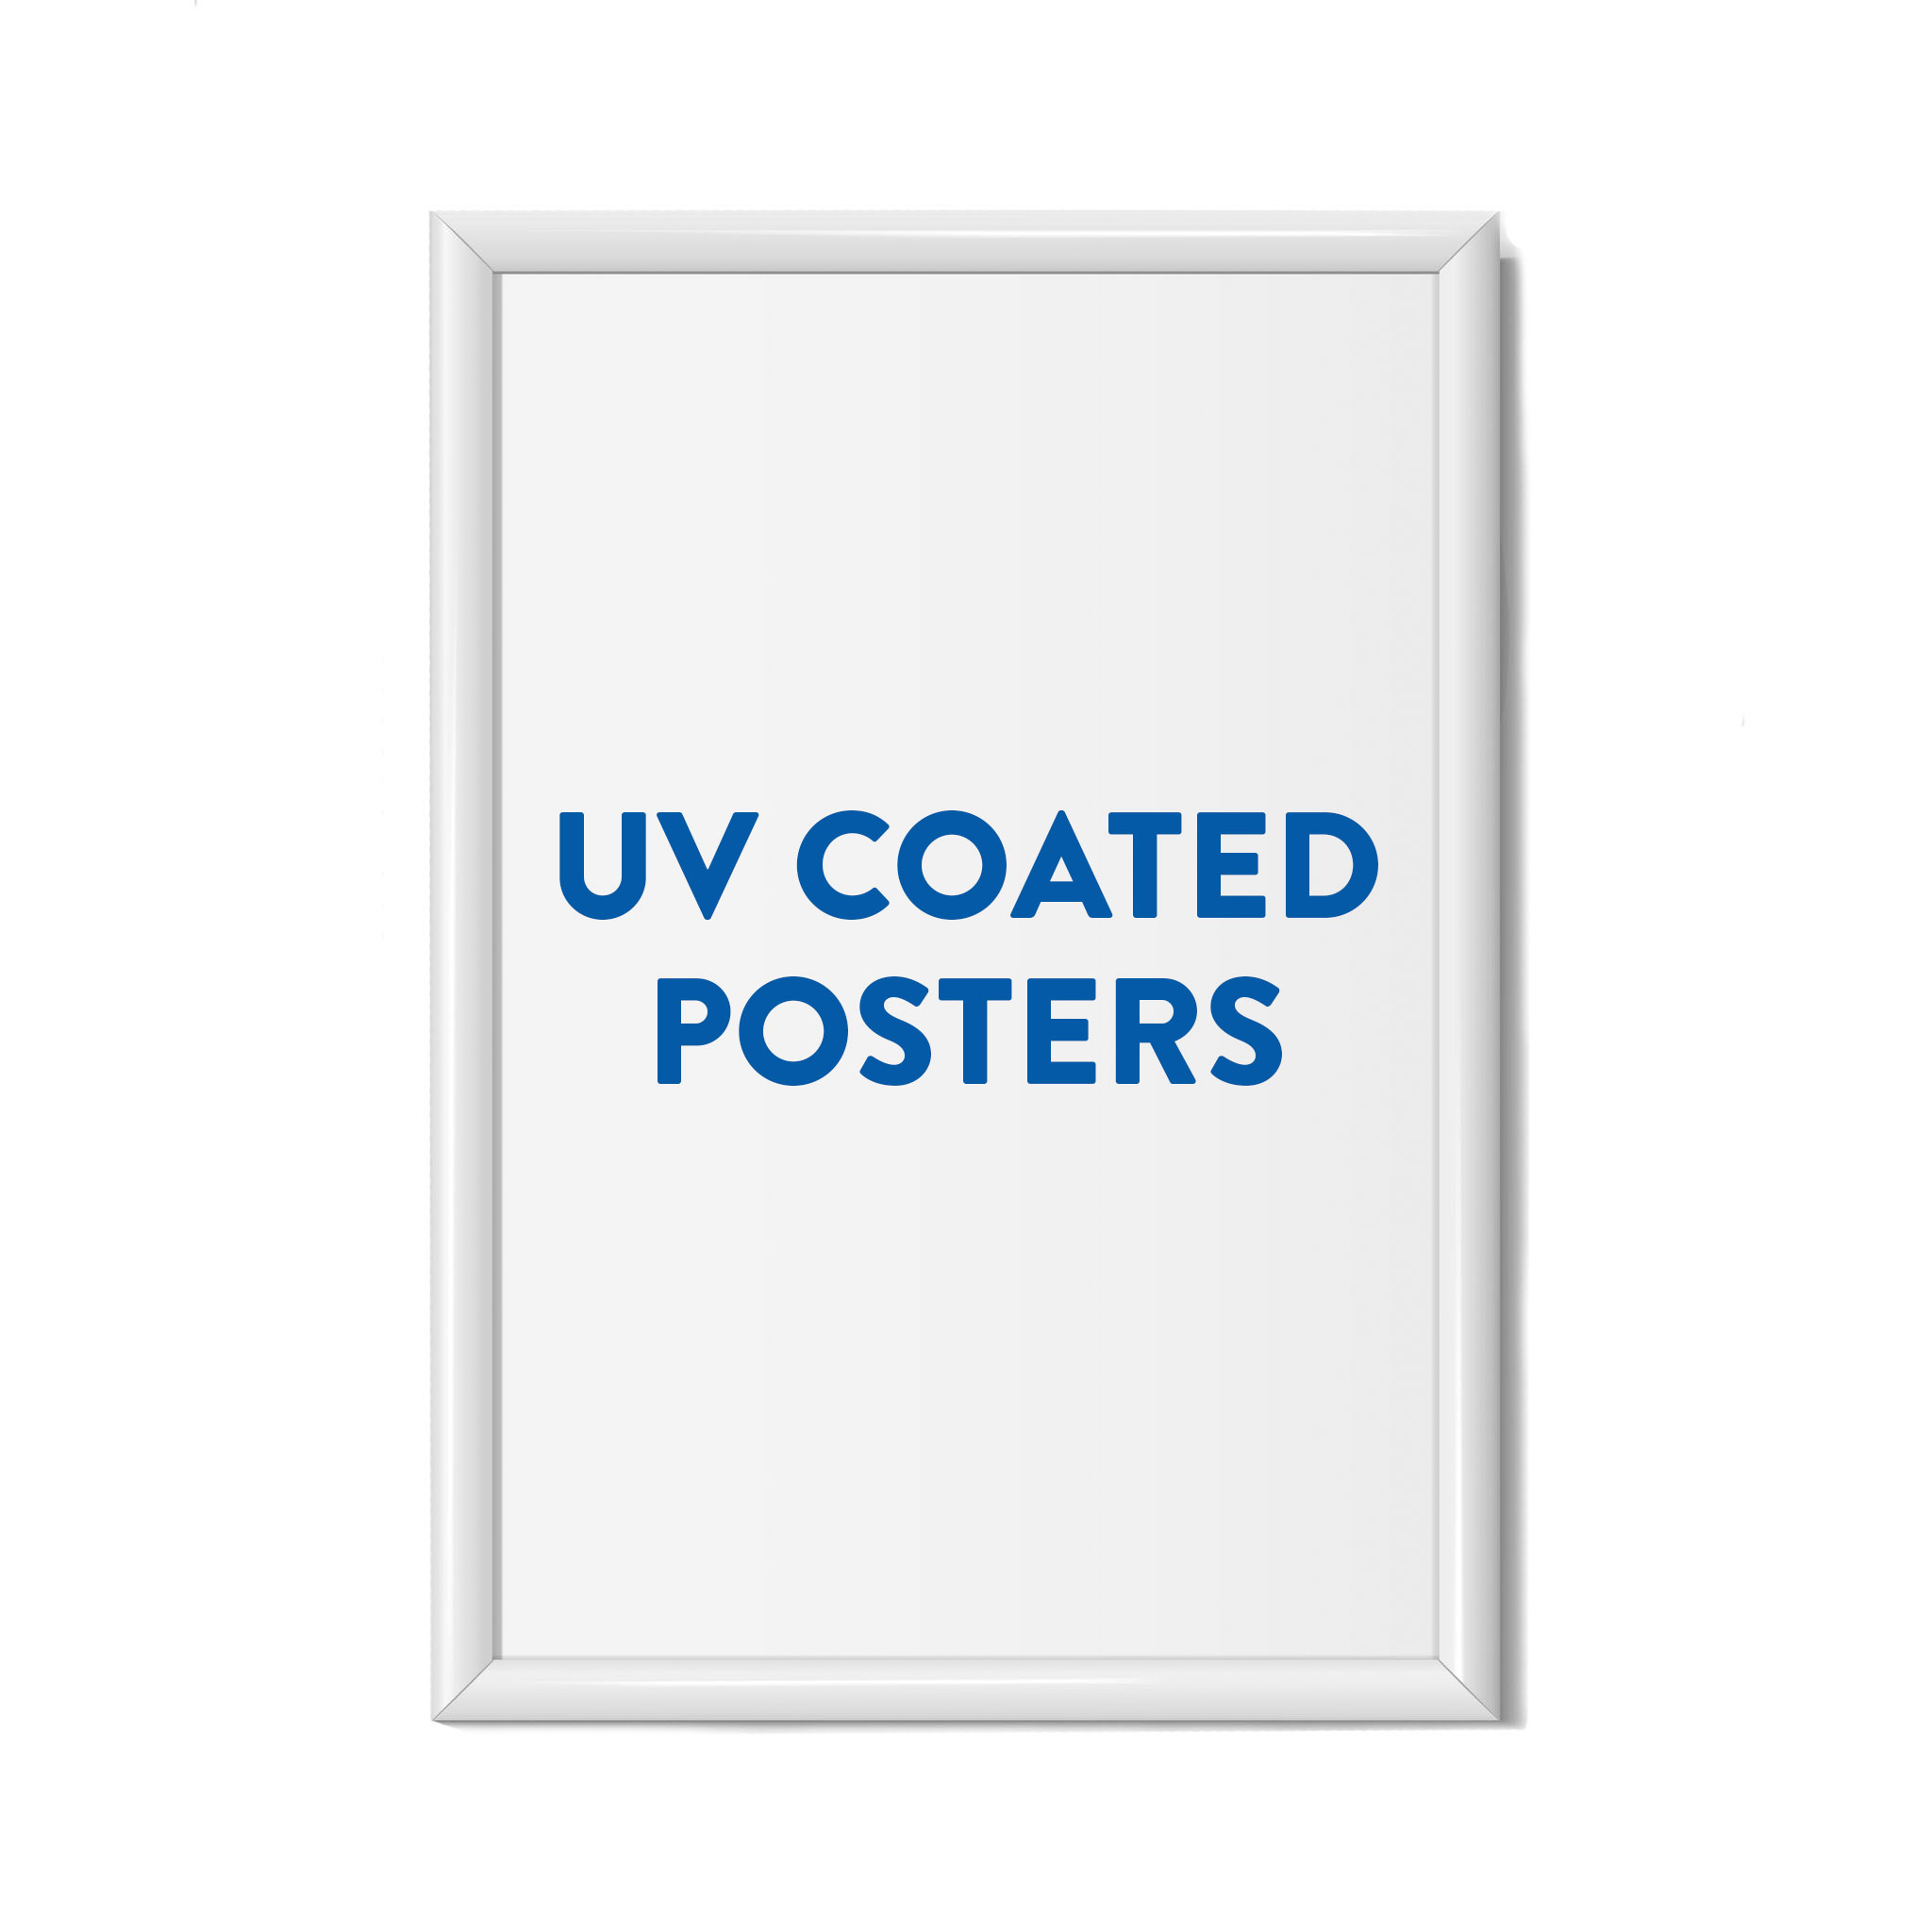 UV Coated Posters